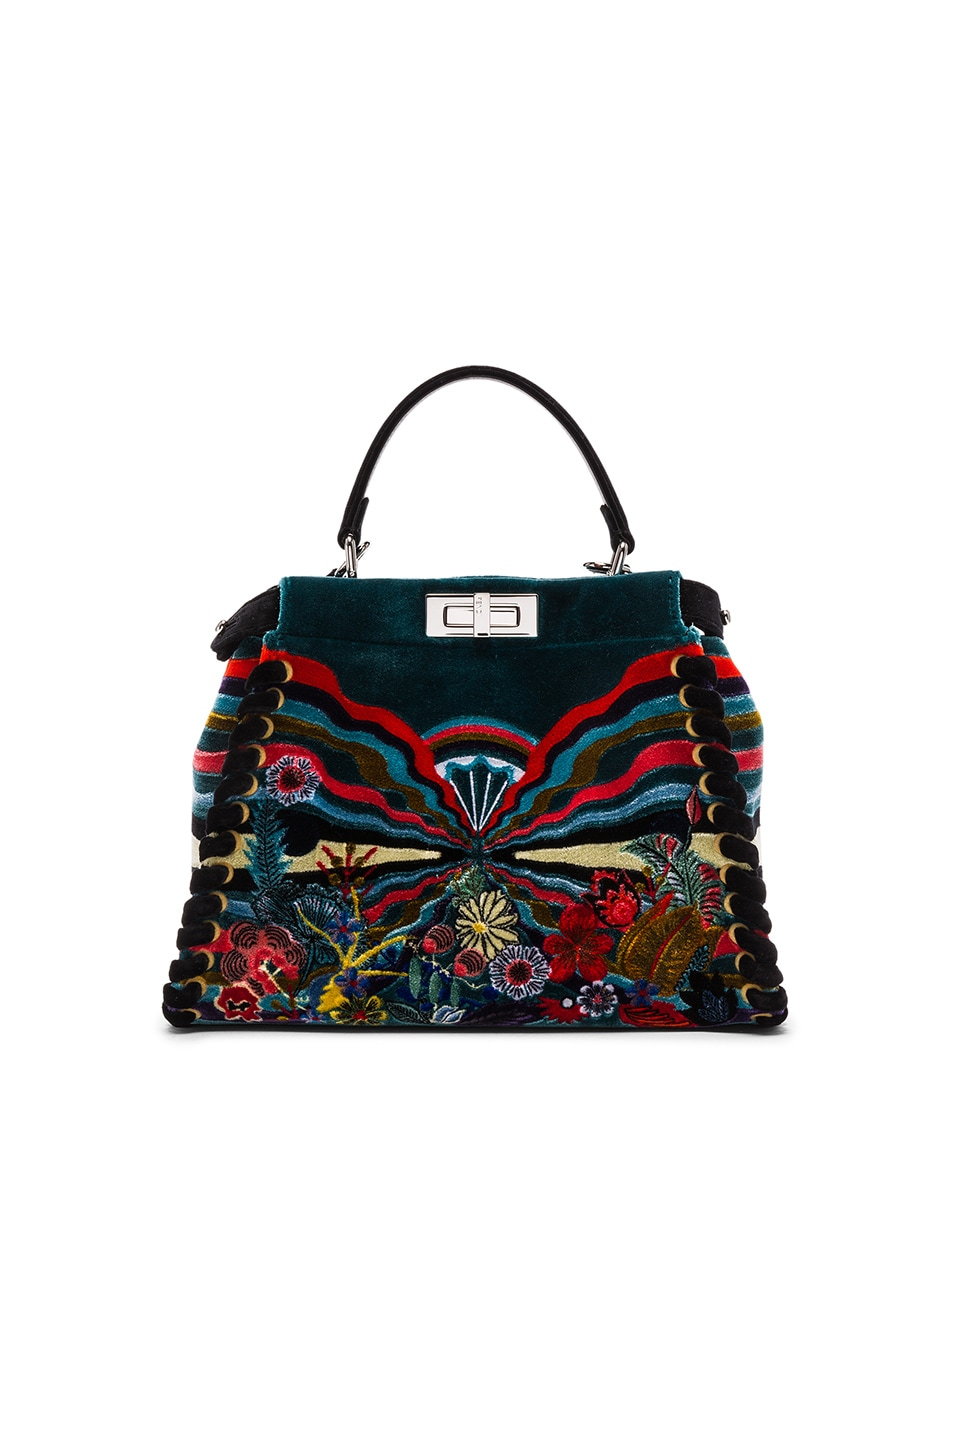 Image 1 of Fendi Hypnogarden Embroidered Regular Peekaboo in Multicolor & Black Palladium